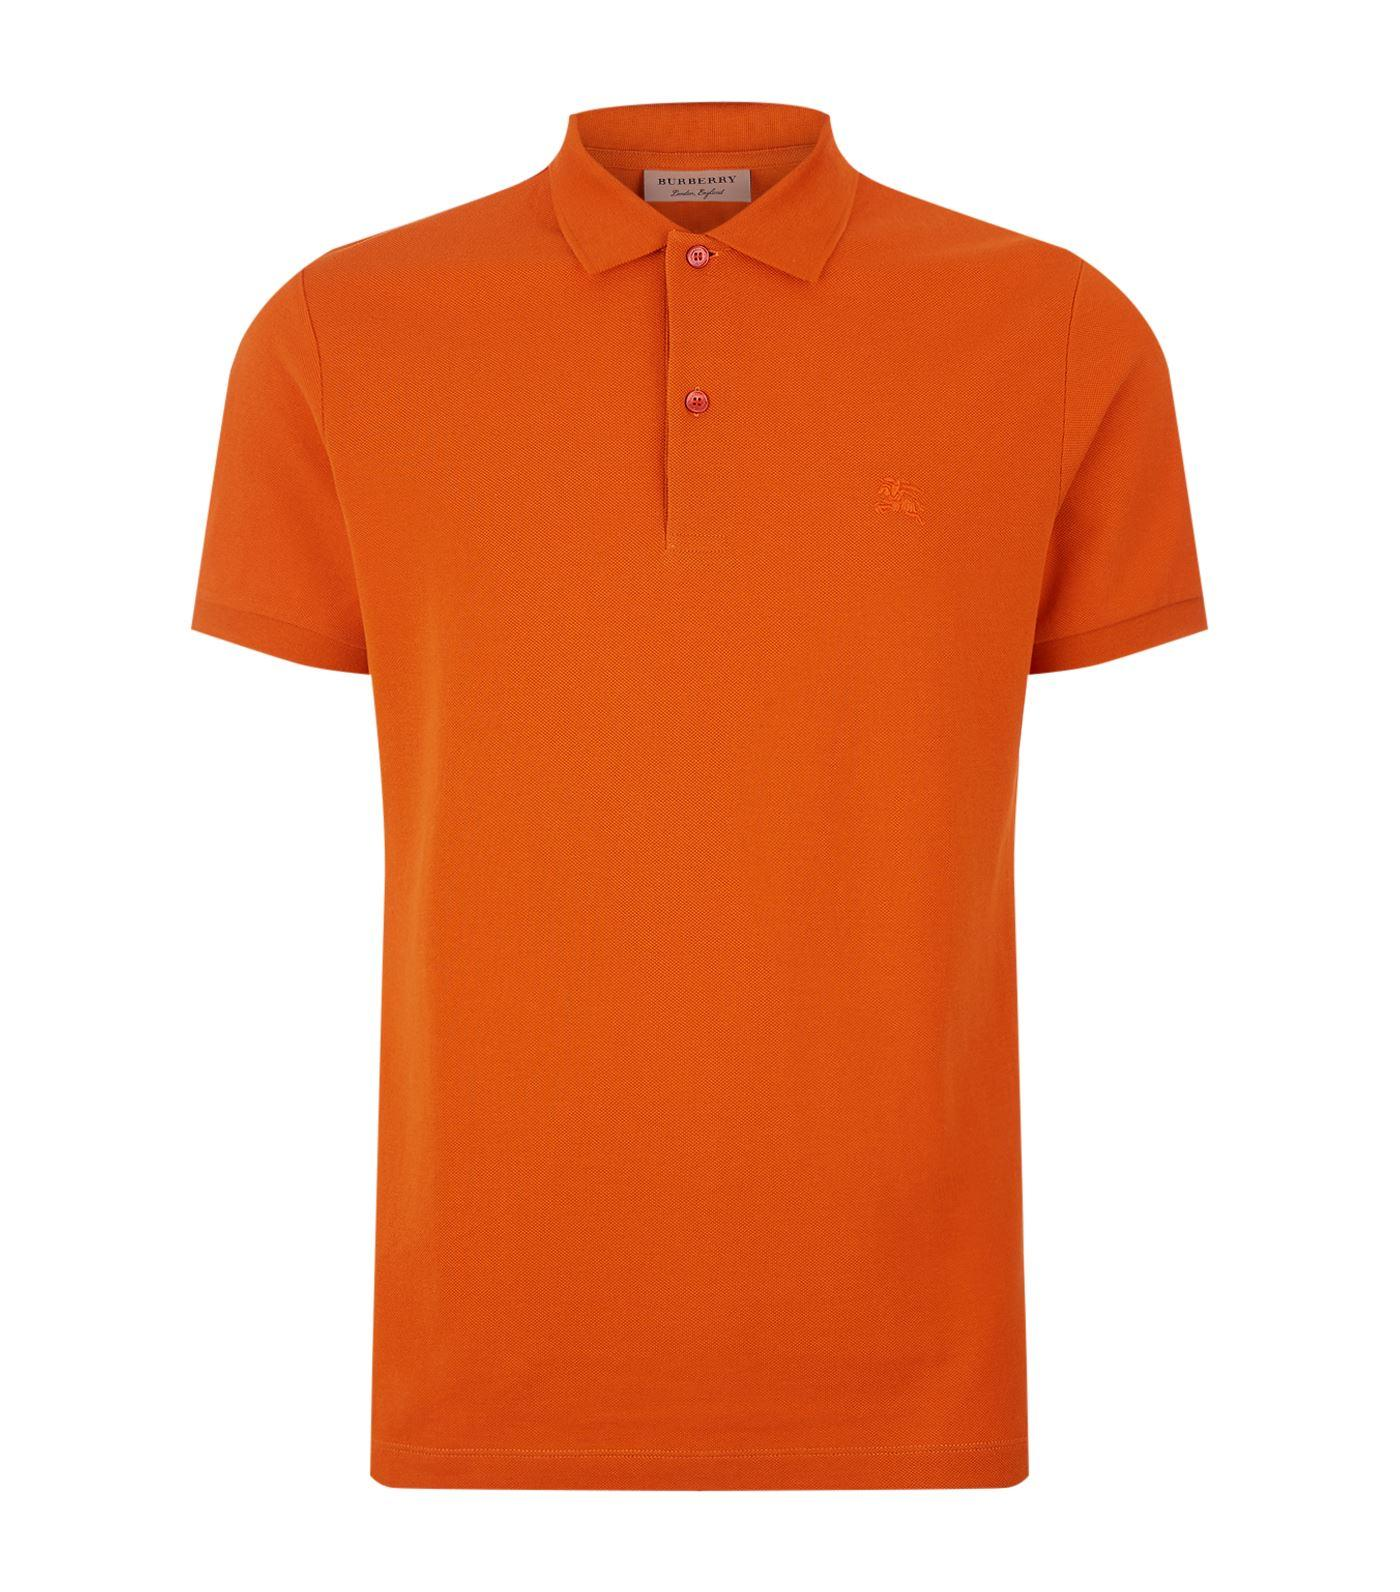 Lyst burberry embroidered logo polo shirt in orange for men for Orange polo shirt mens